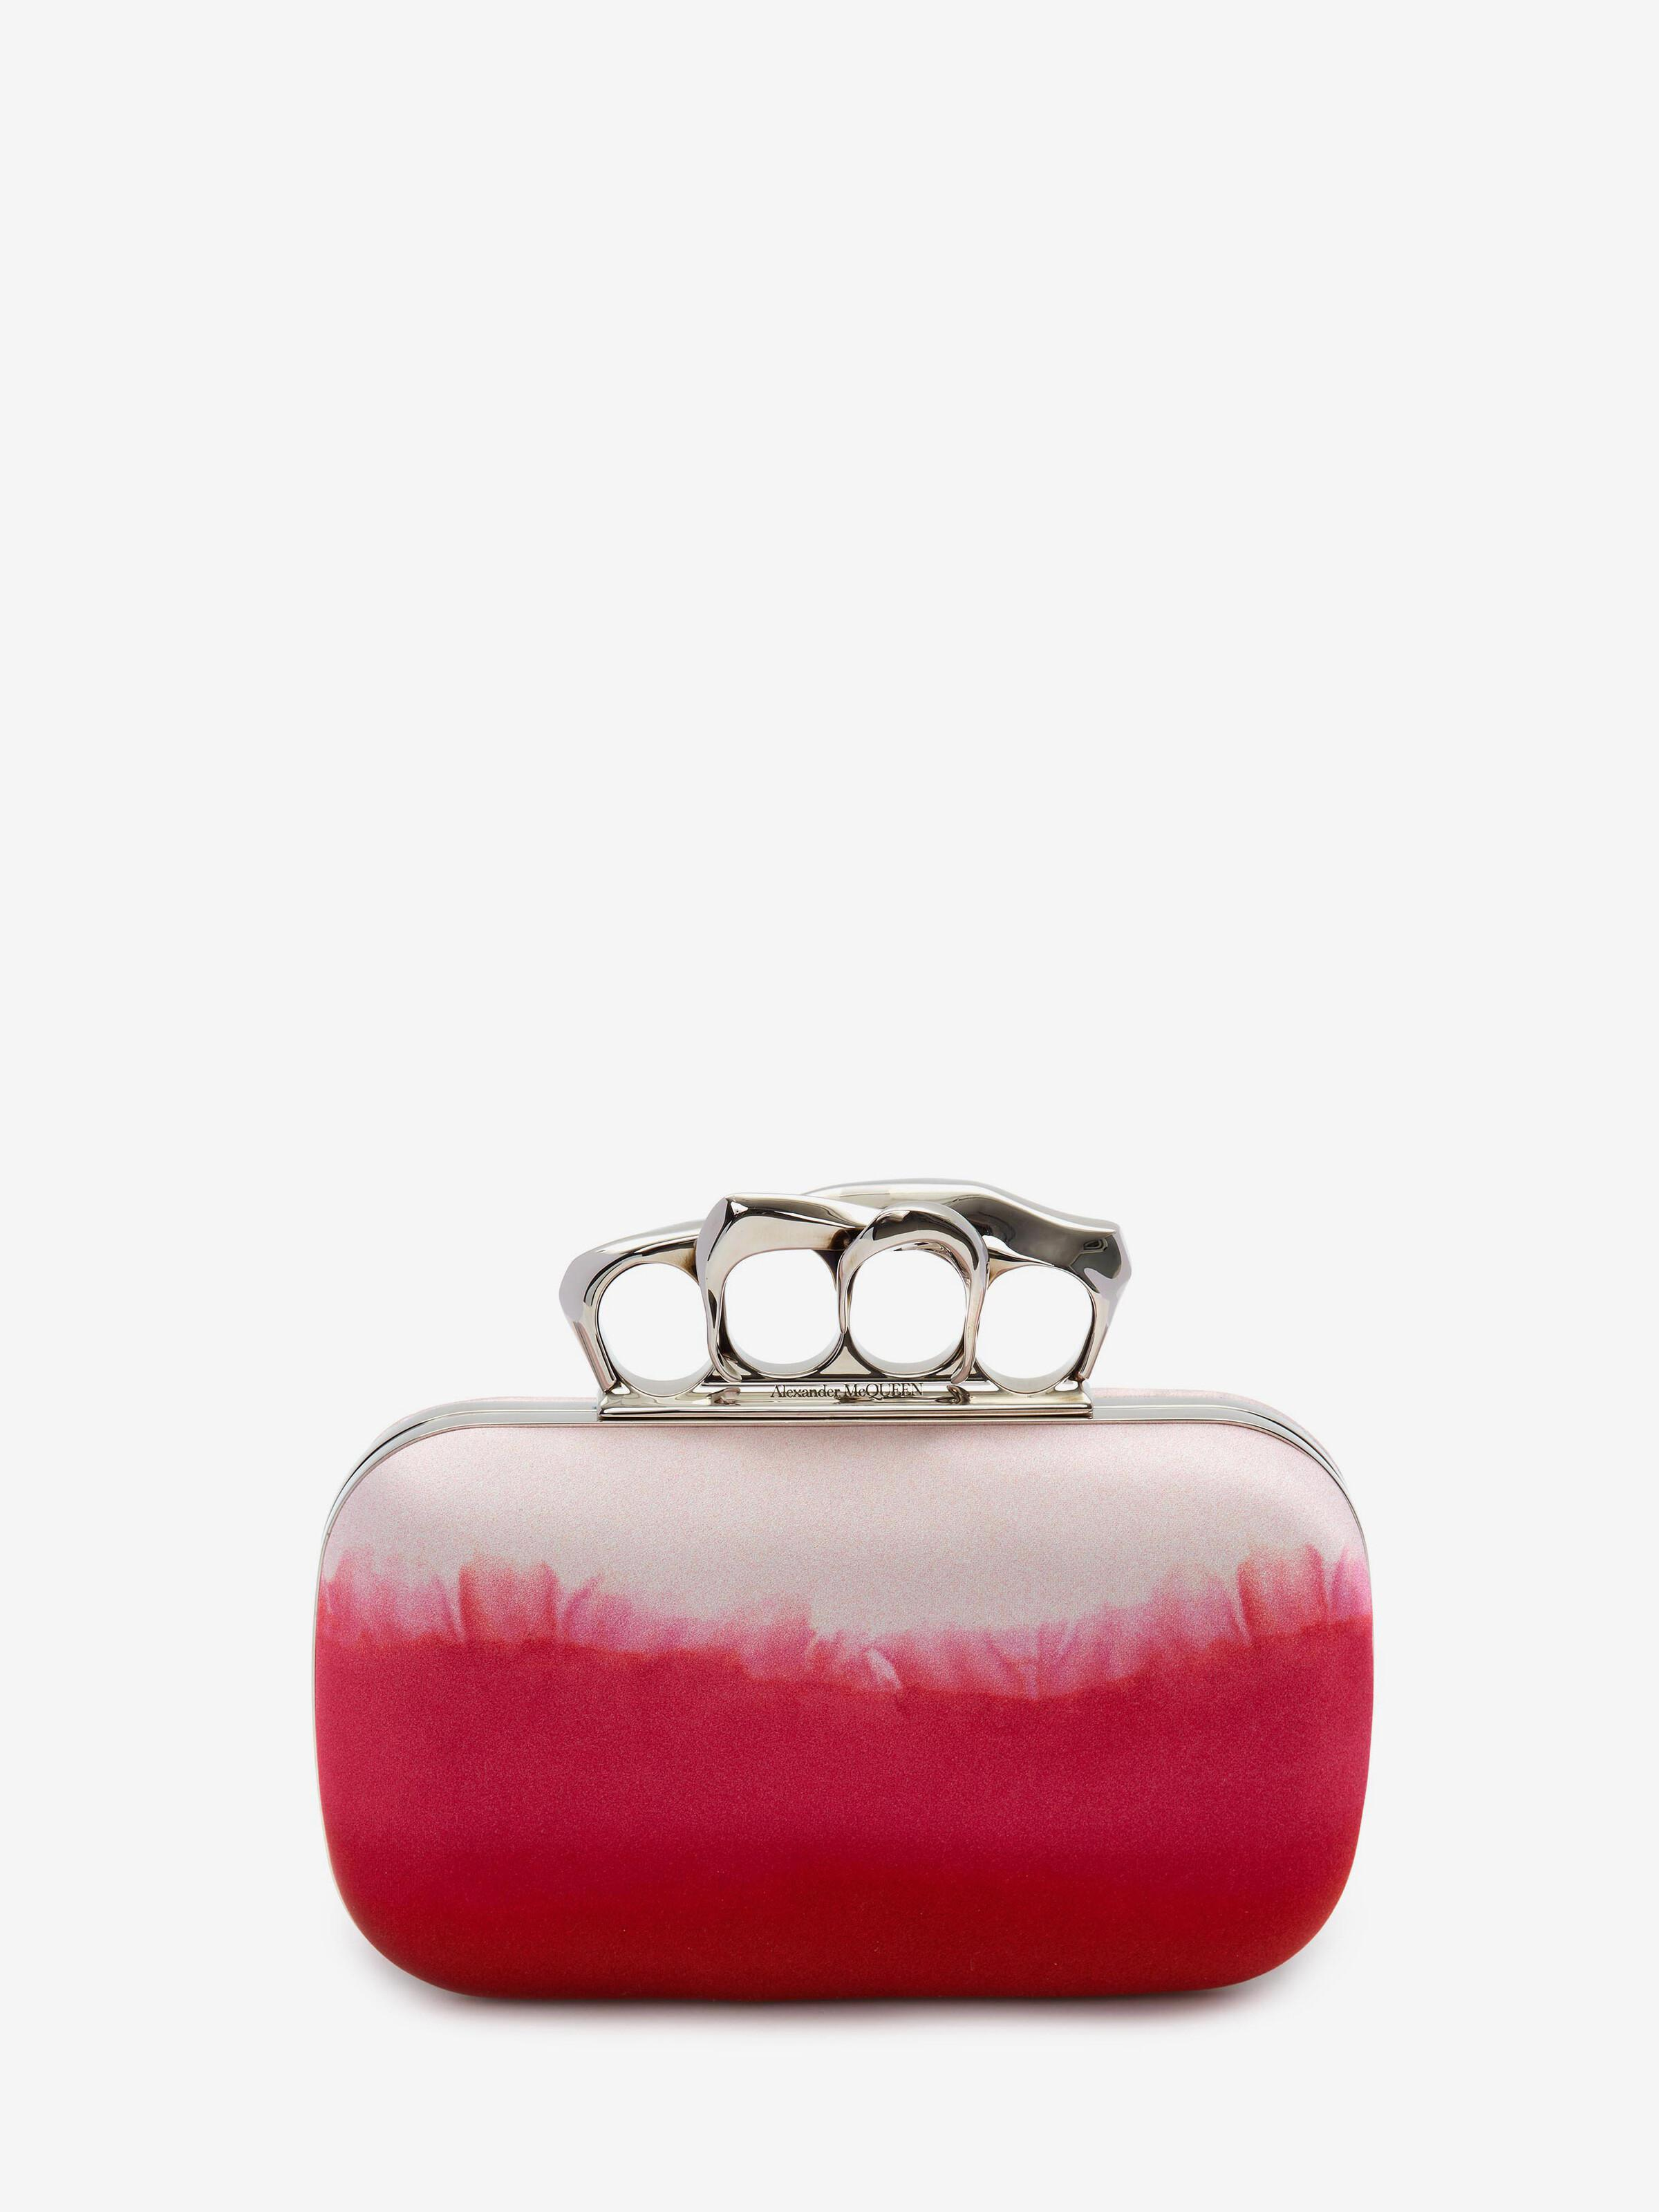 Sculptural Four-Ring Pouch